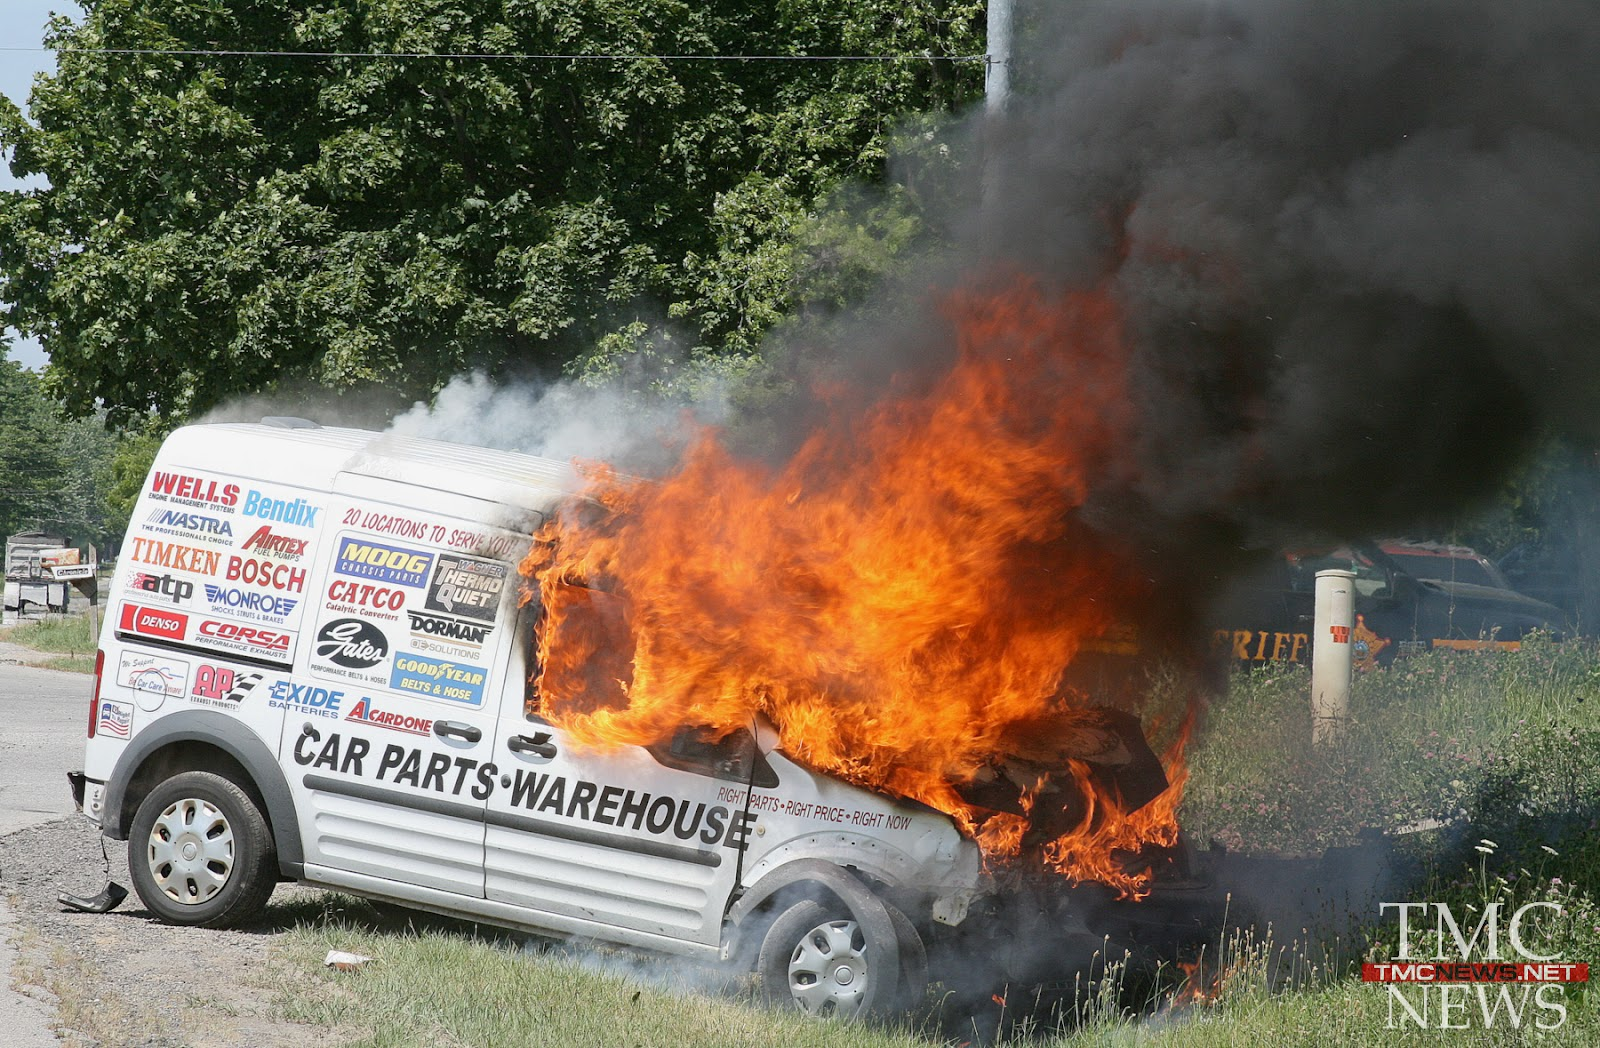 TMCNEWS NET: AUTO PARTS VAN CATCHES FIRE AFTER CRASH ON RT 113